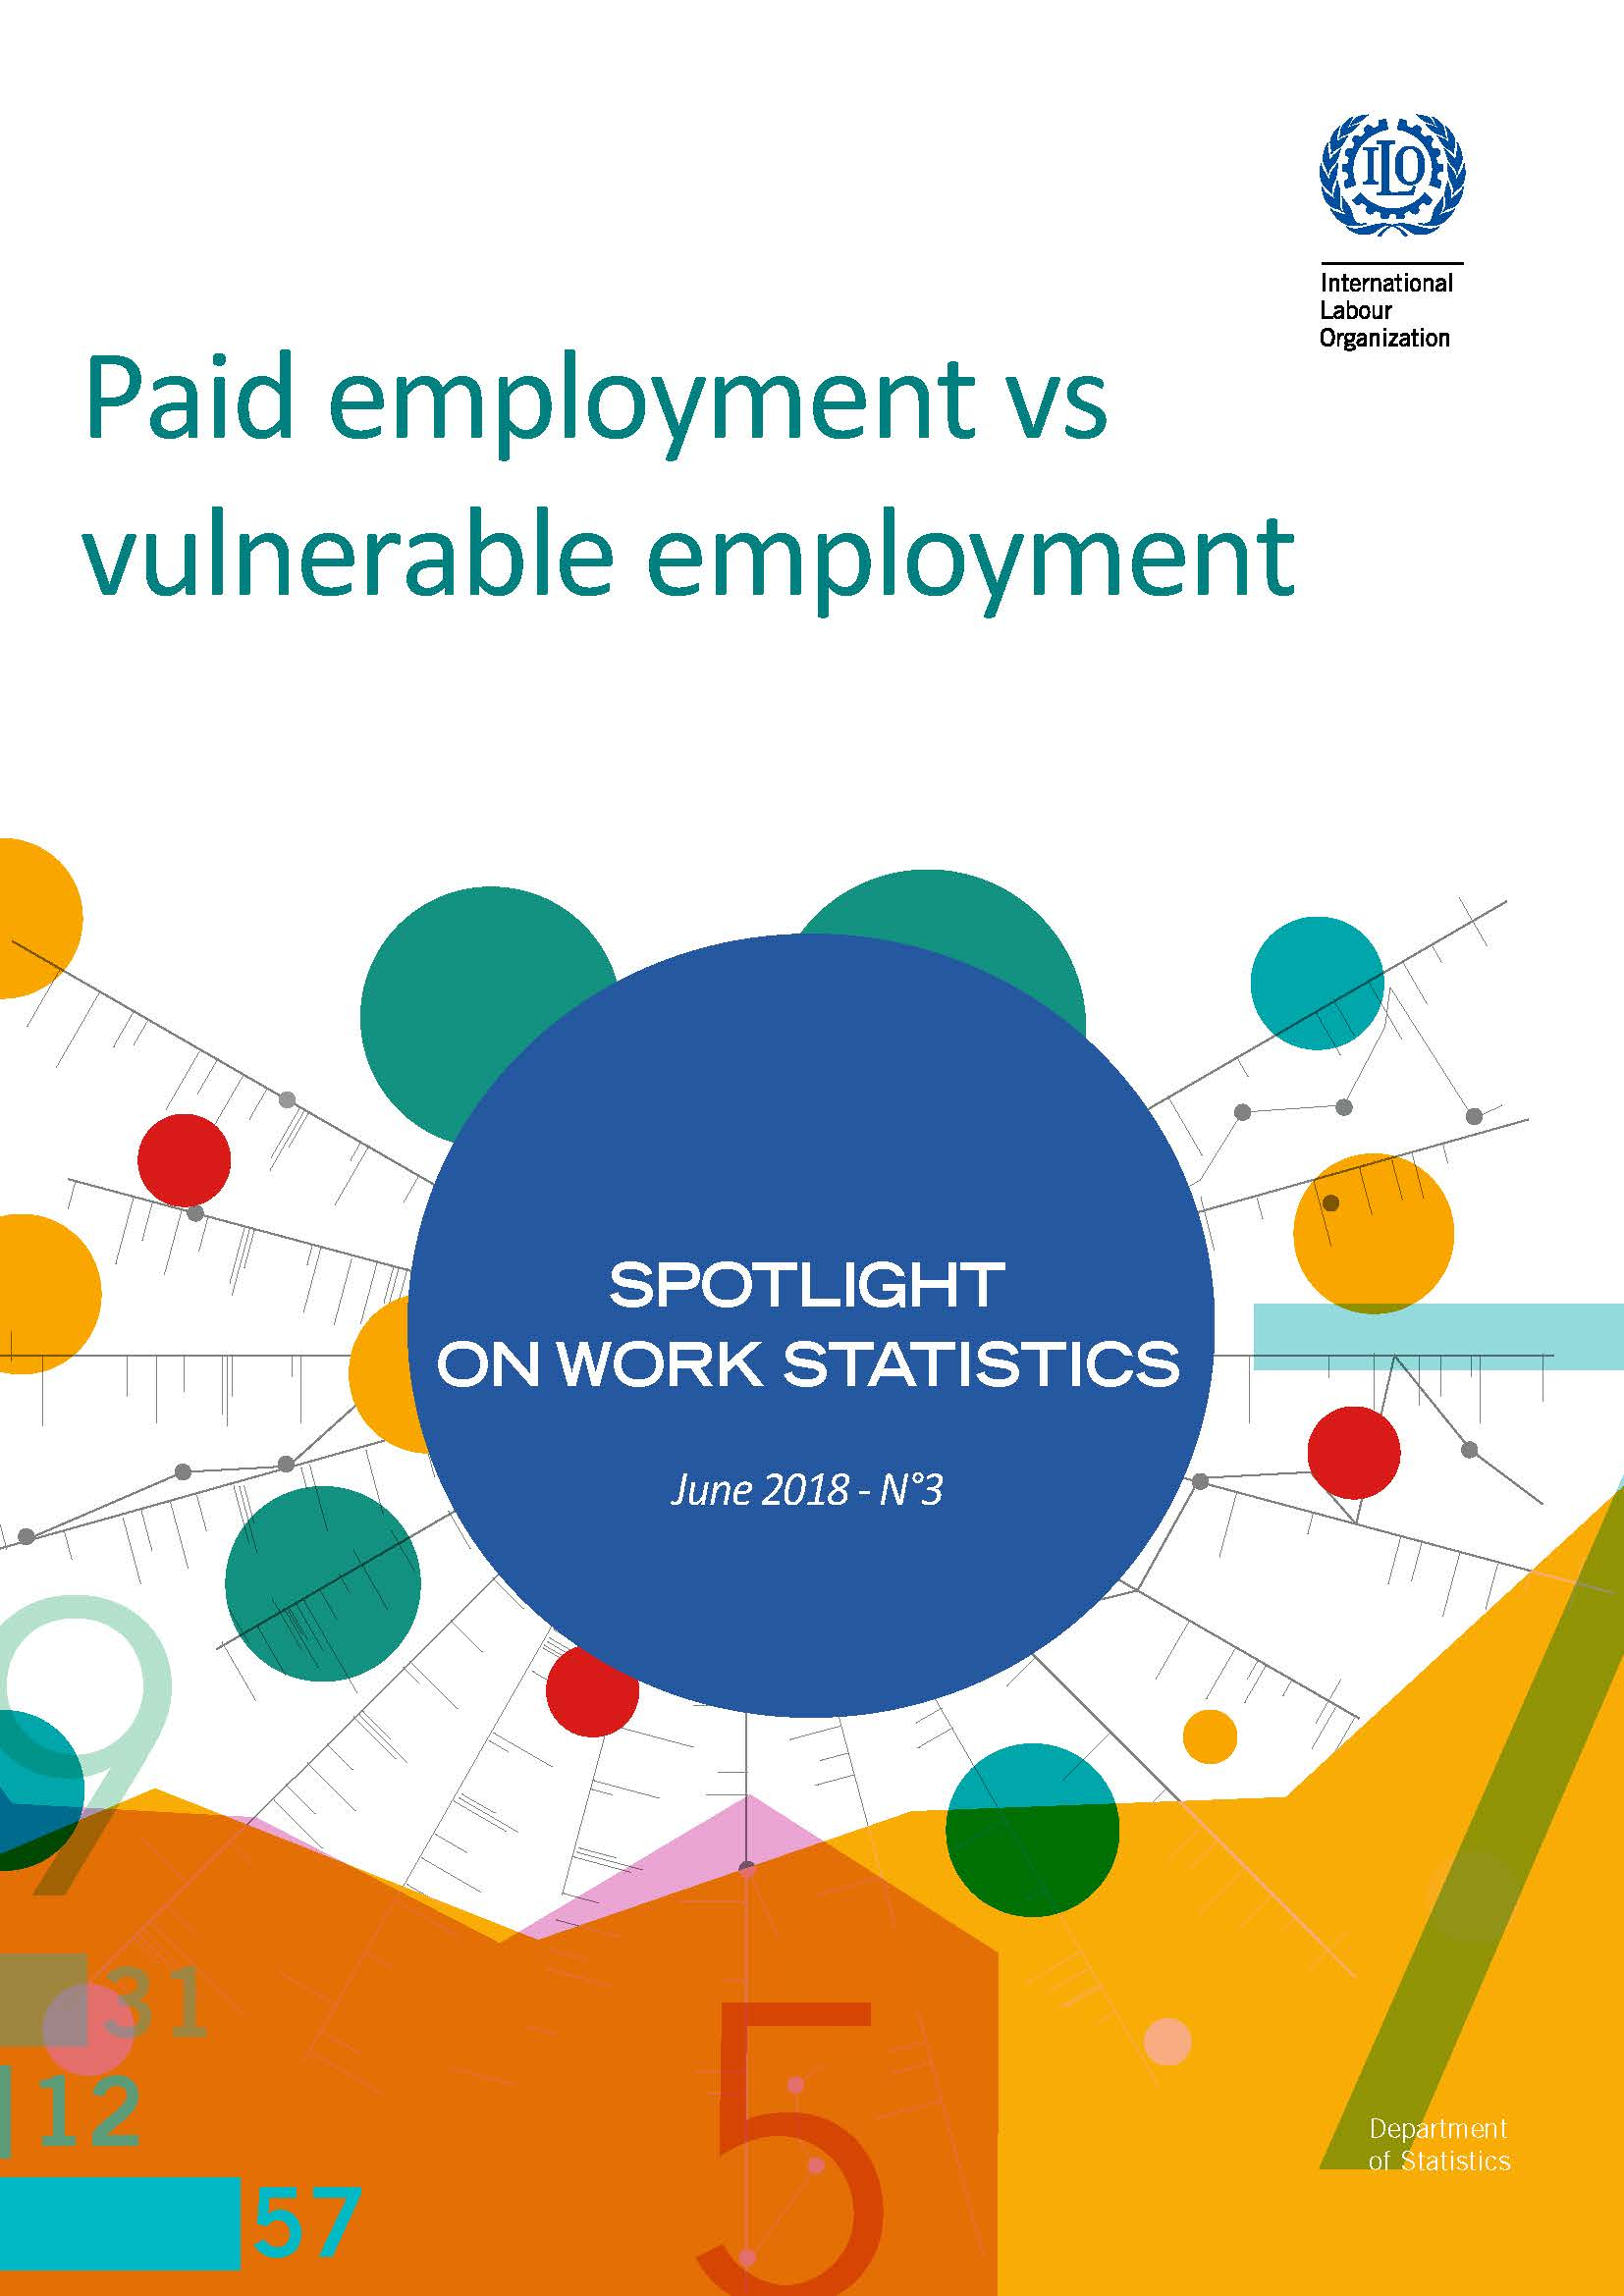 Spotlight on Work Statistics: aid employment vs vulnerable employment